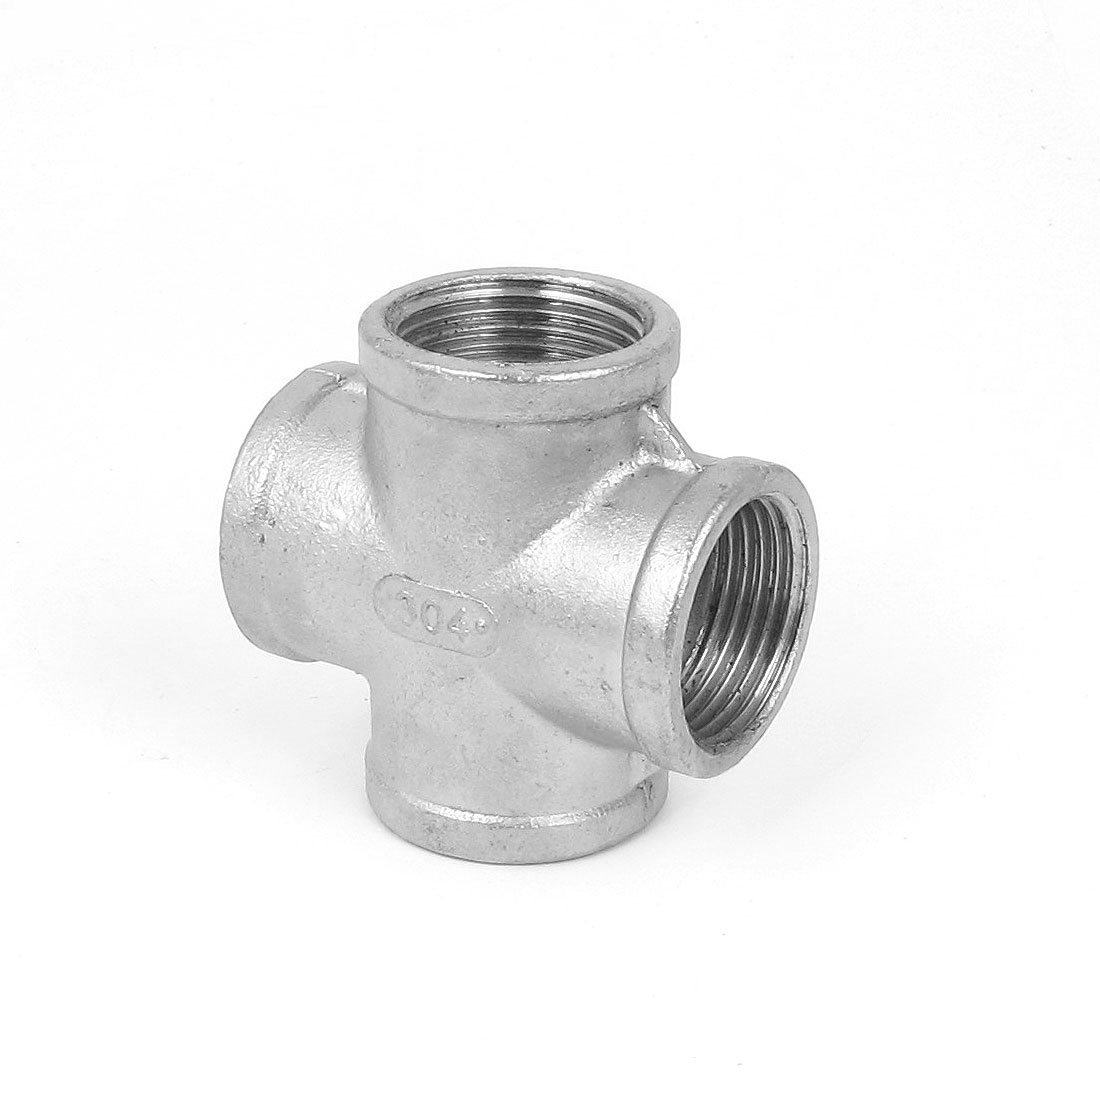 1BSP Female Threaded 4 Ways Cross Coupler Adapter Pipe Fitting Silver Tone